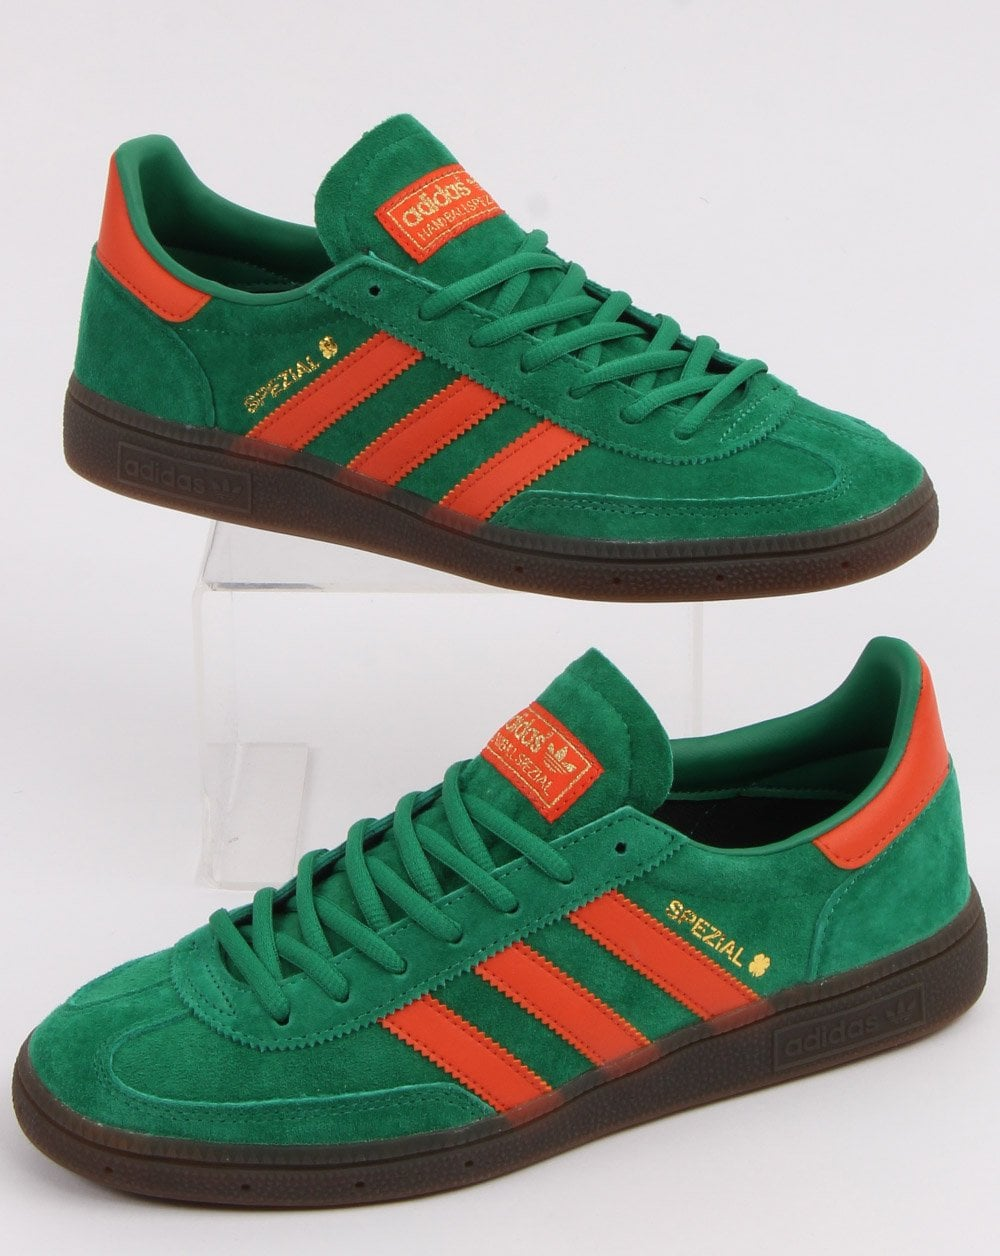 adidas trainers for boys green